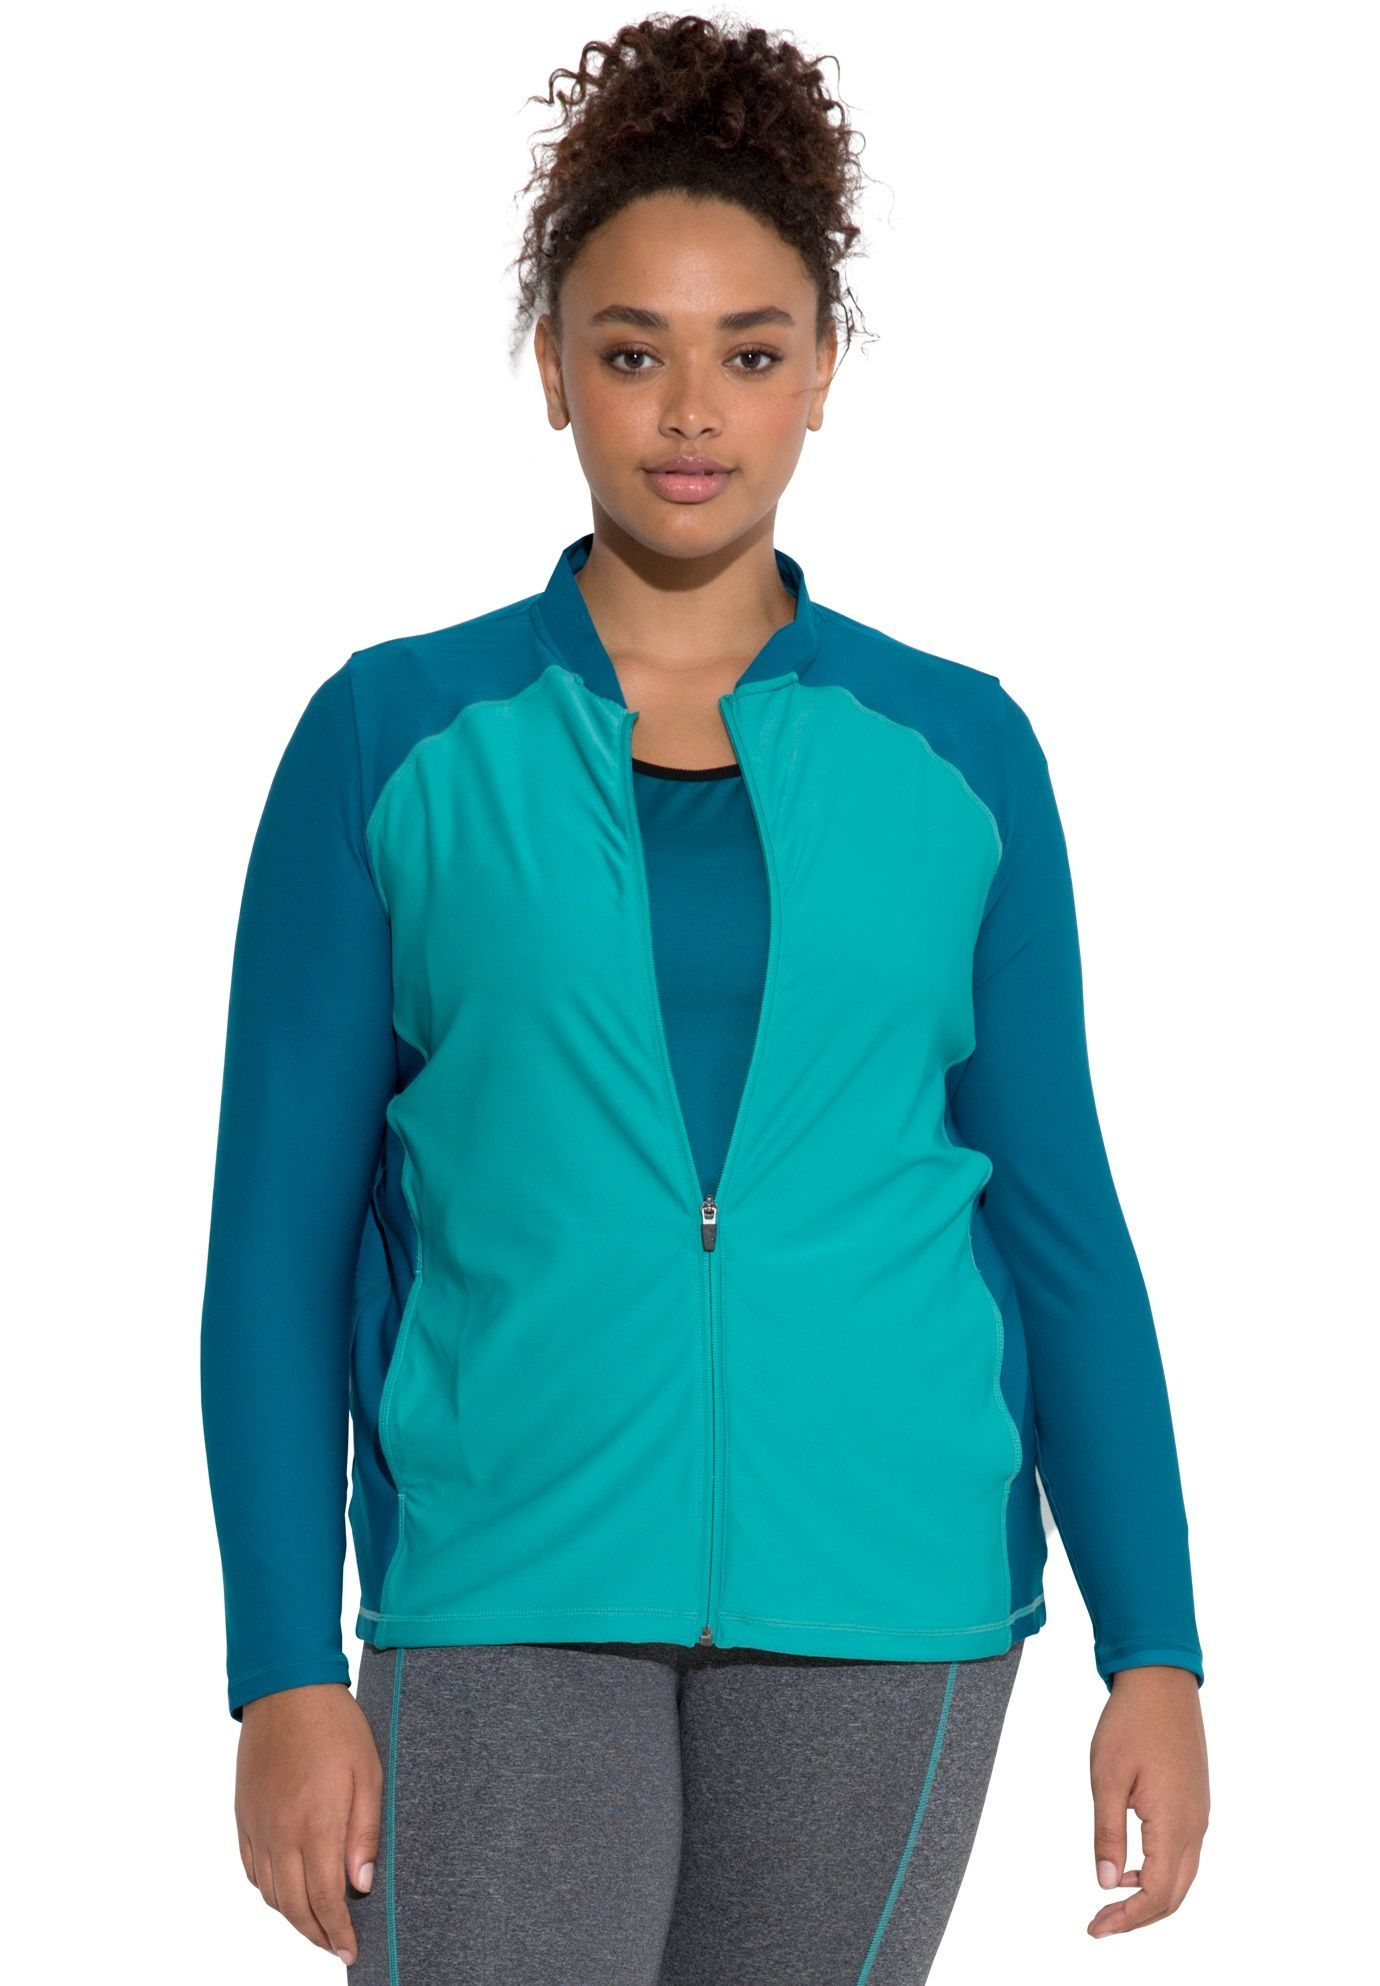 purchase authentic first rate nice shoes The active jacket by fullbeauty SPORT - Women's Plus Size ...